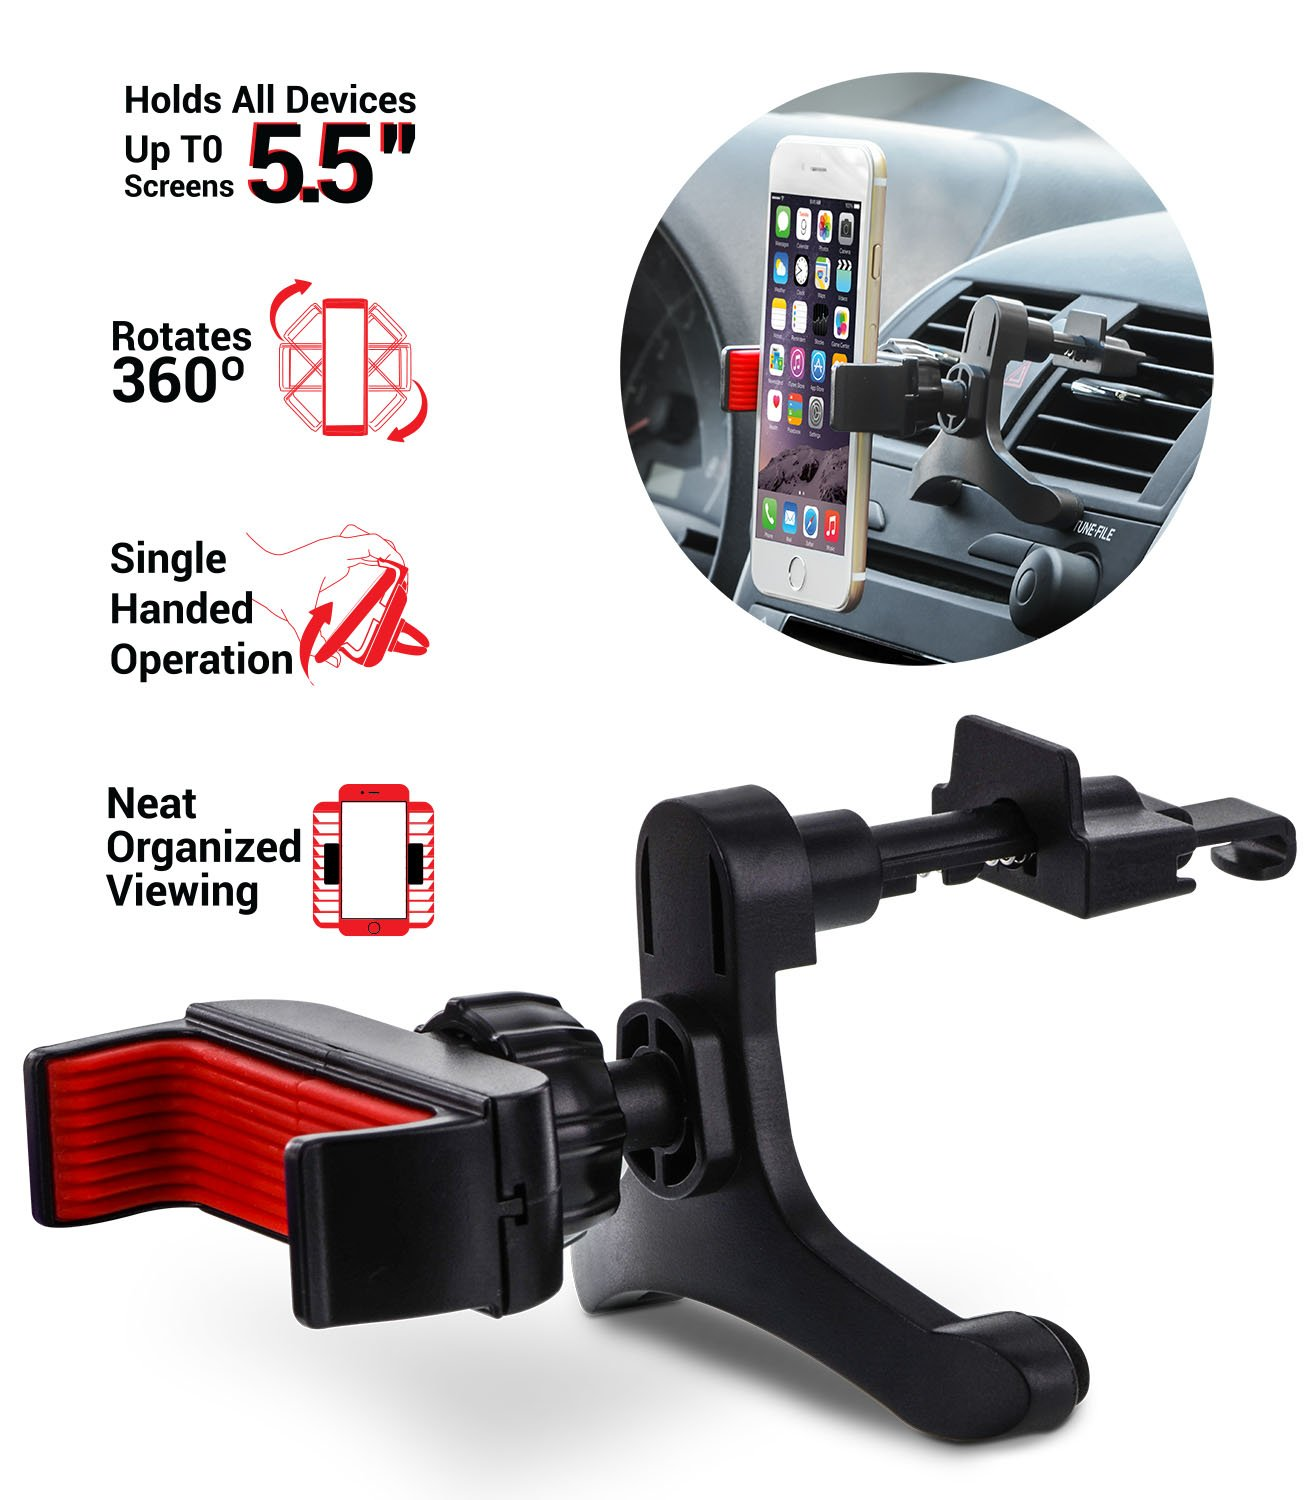 Grip Mount Works with All Mobile Phones One Handed Operation, Strong Grip UNI-SPH01-TVM Aduro U-Grip Smartphone Car Mount, 360 Rotation Black//Red Air Vent